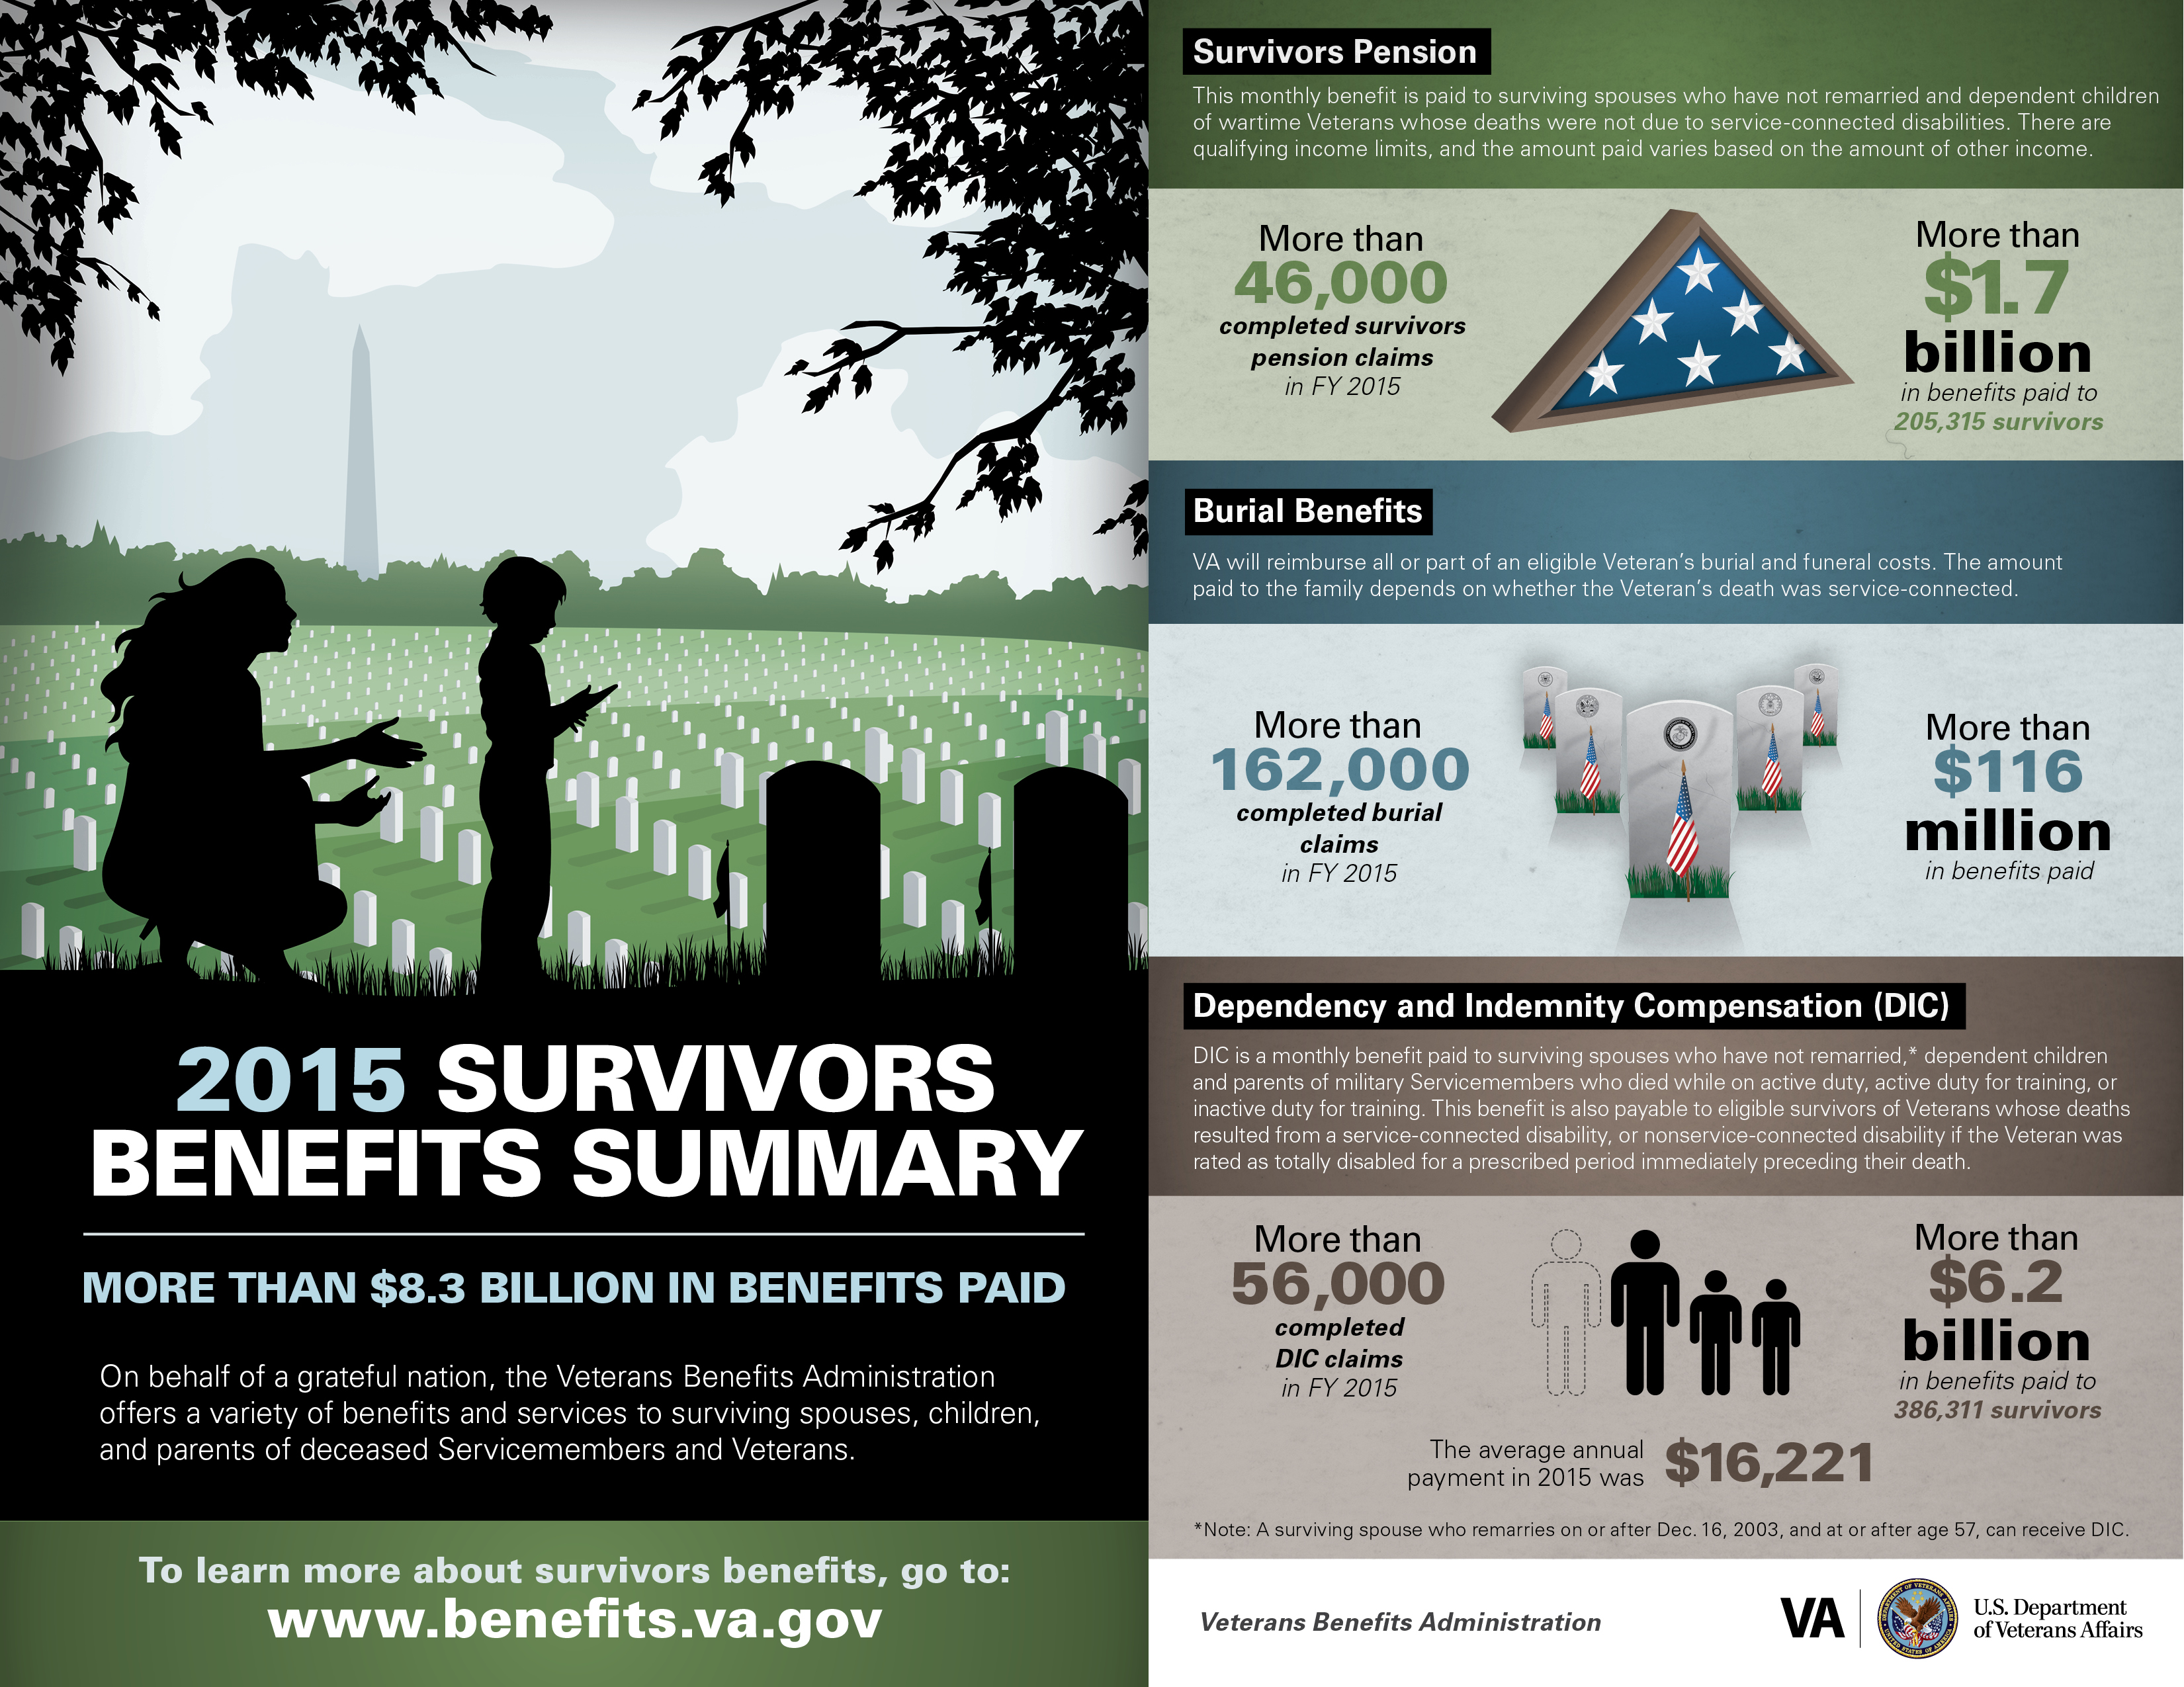 2015 Survivors' Benefits Summary. To learn more visit https://www.benefits.va.gov/pension. See PDF Download link to view an accessible PDF that addresses the text content of this document.